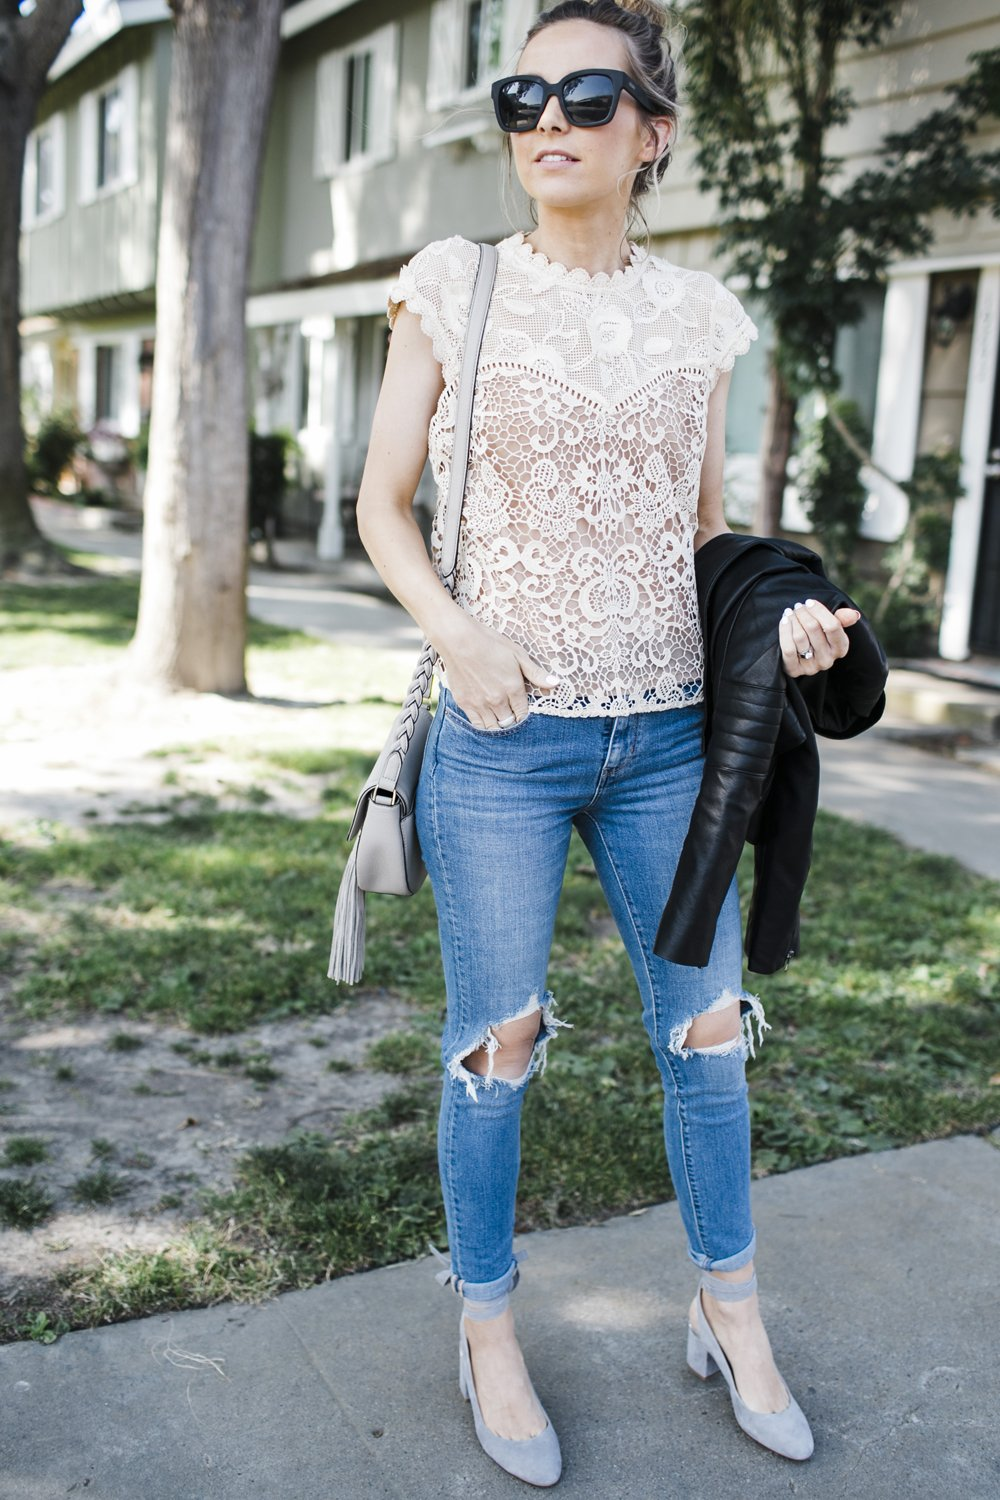 Merrick's Art Levi Denim and Lace Top